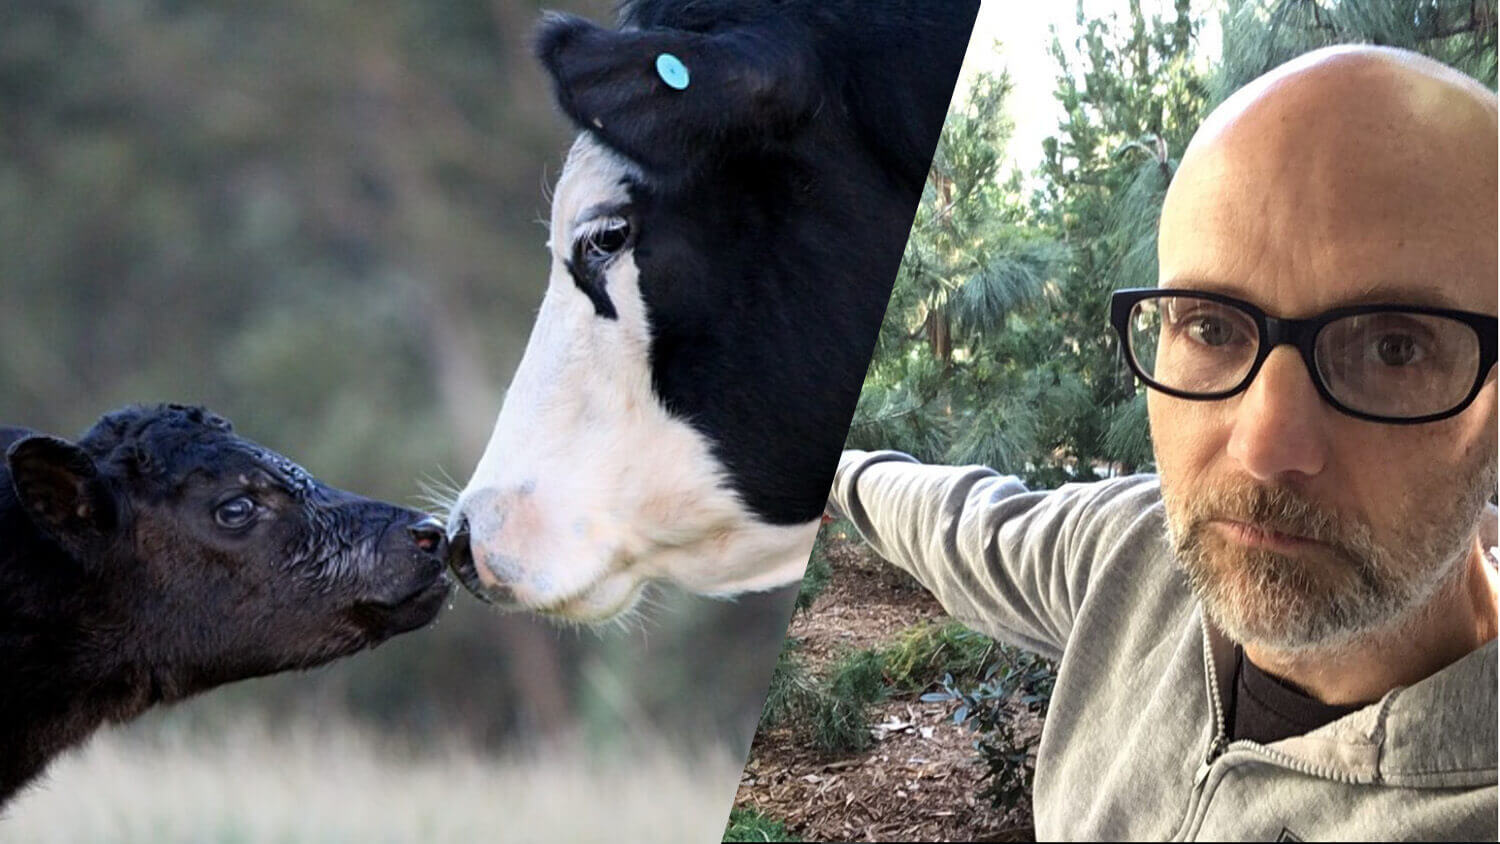 Vegan Celeb Moby Says Dairy Cow Moms Belong With Their Babies, Too